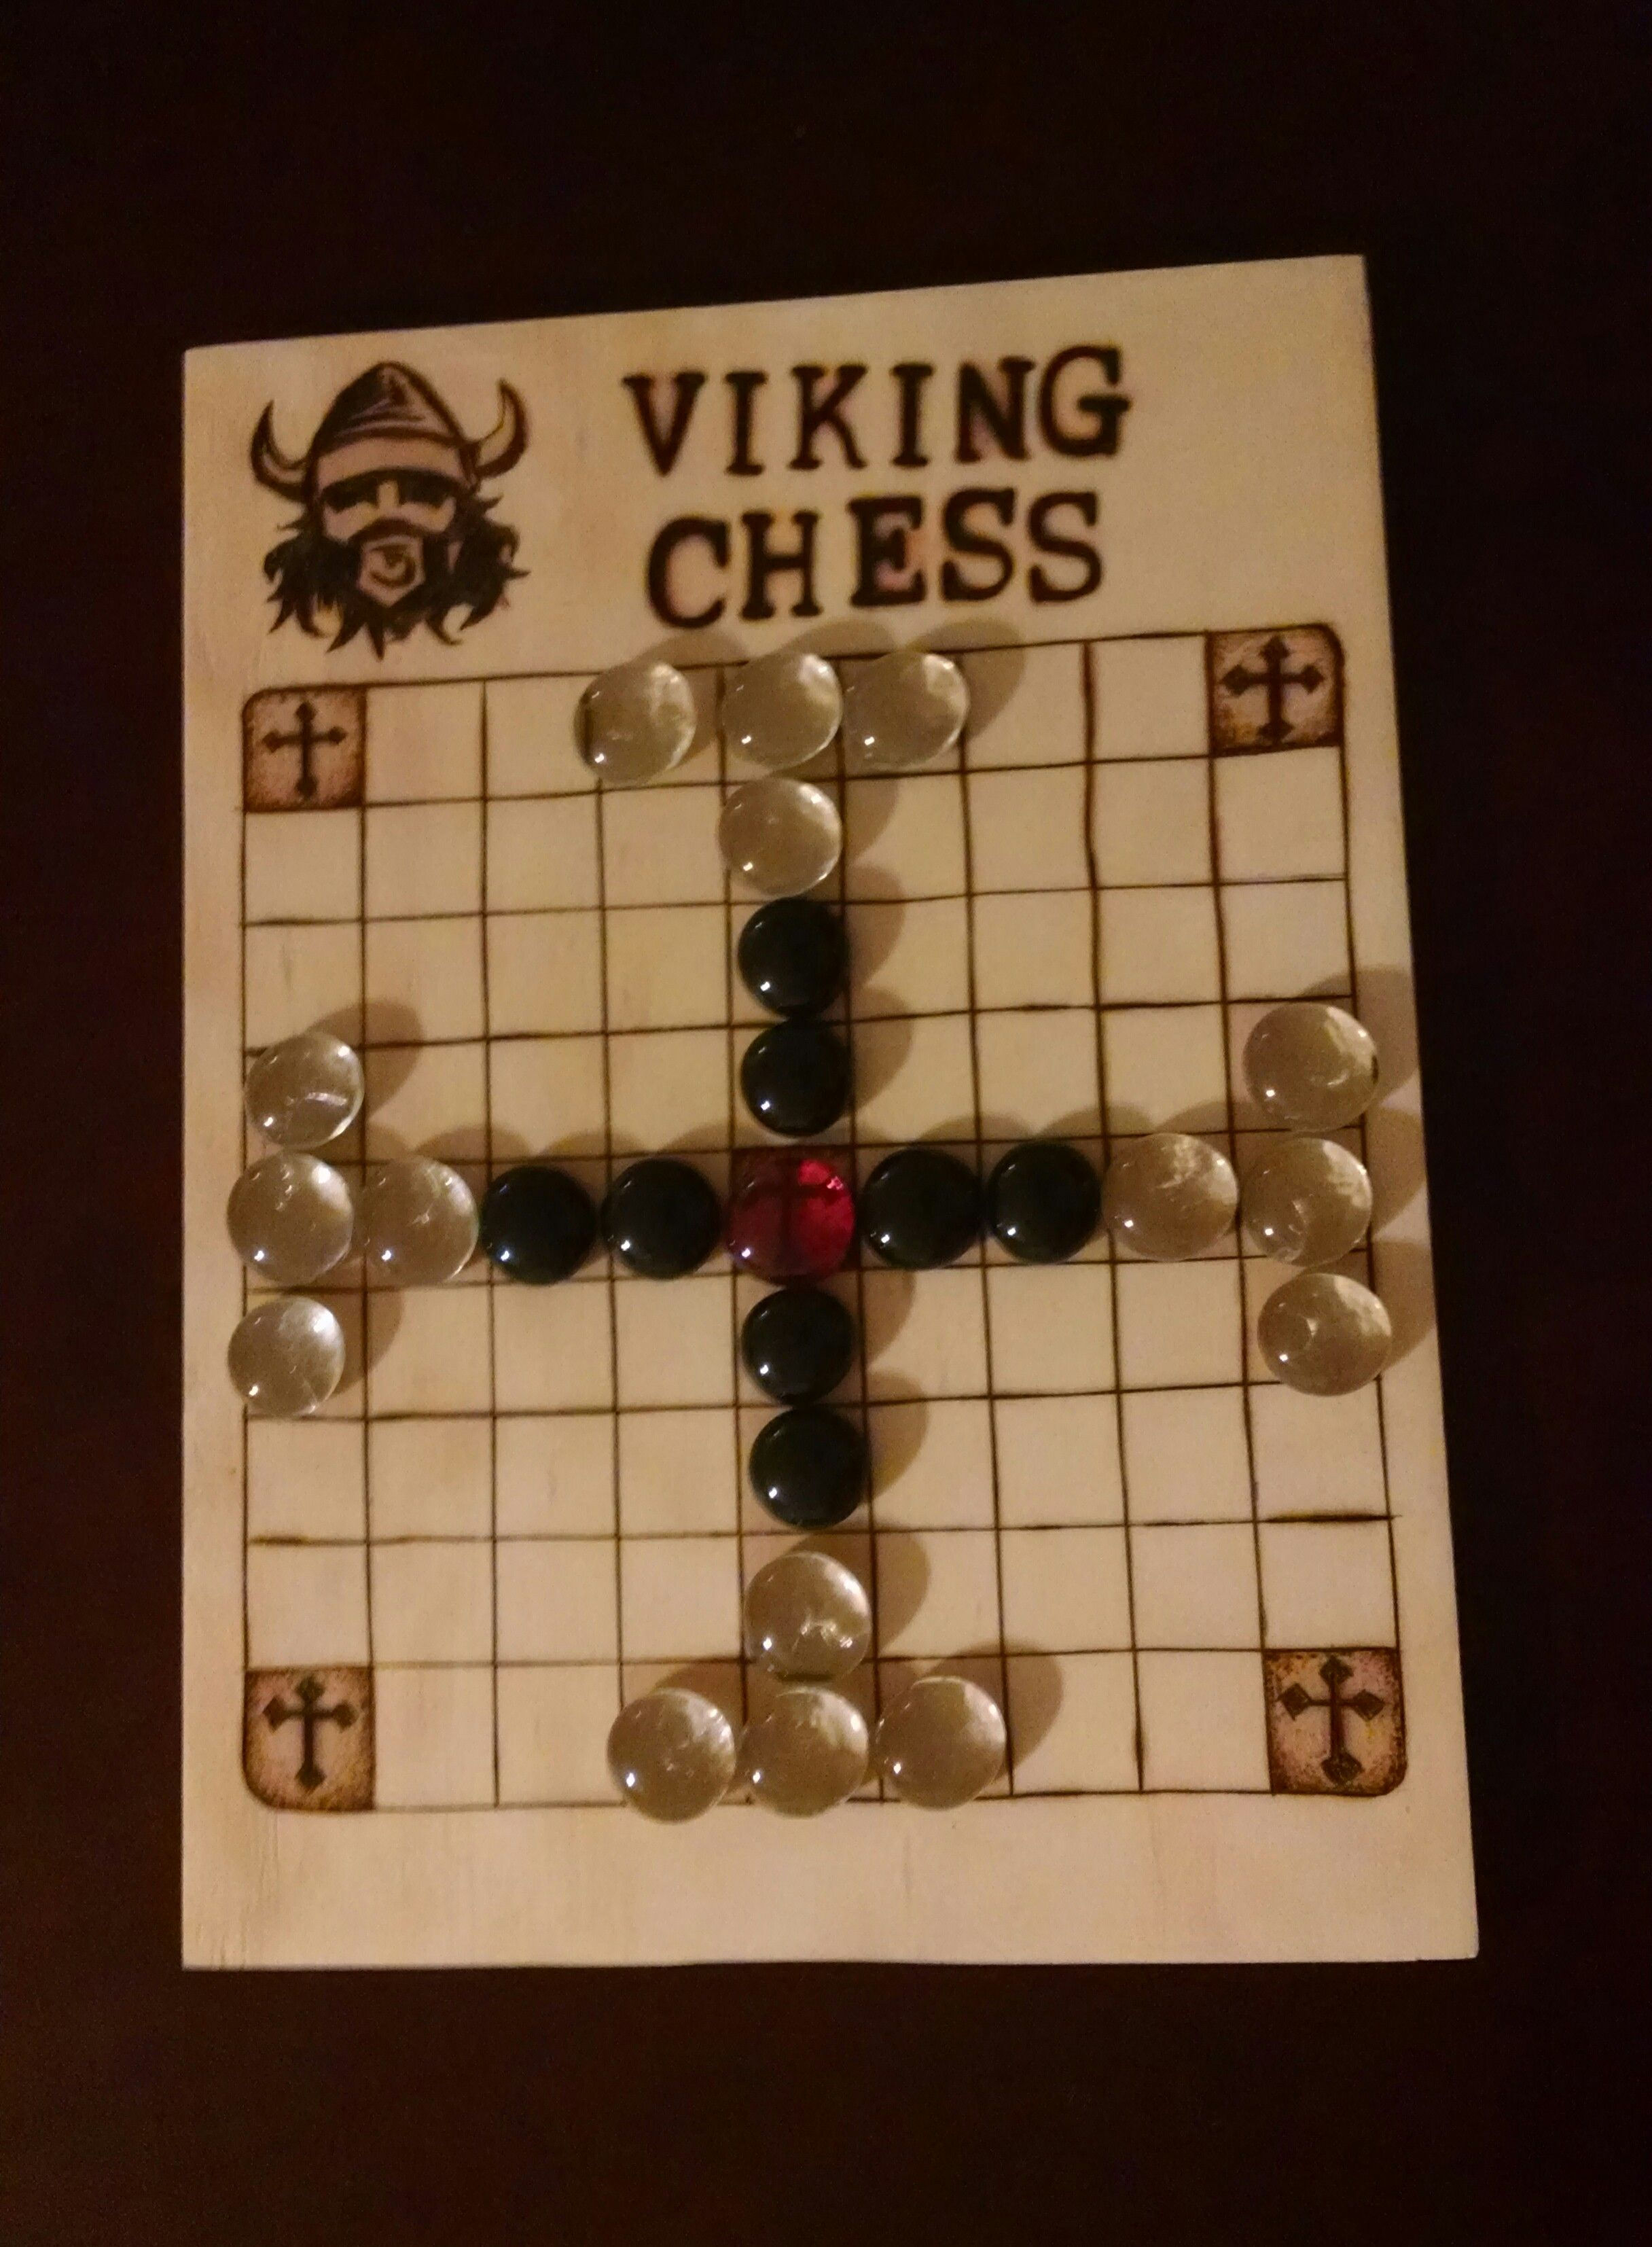 Board based on the Android app, Viking Chess. Viking